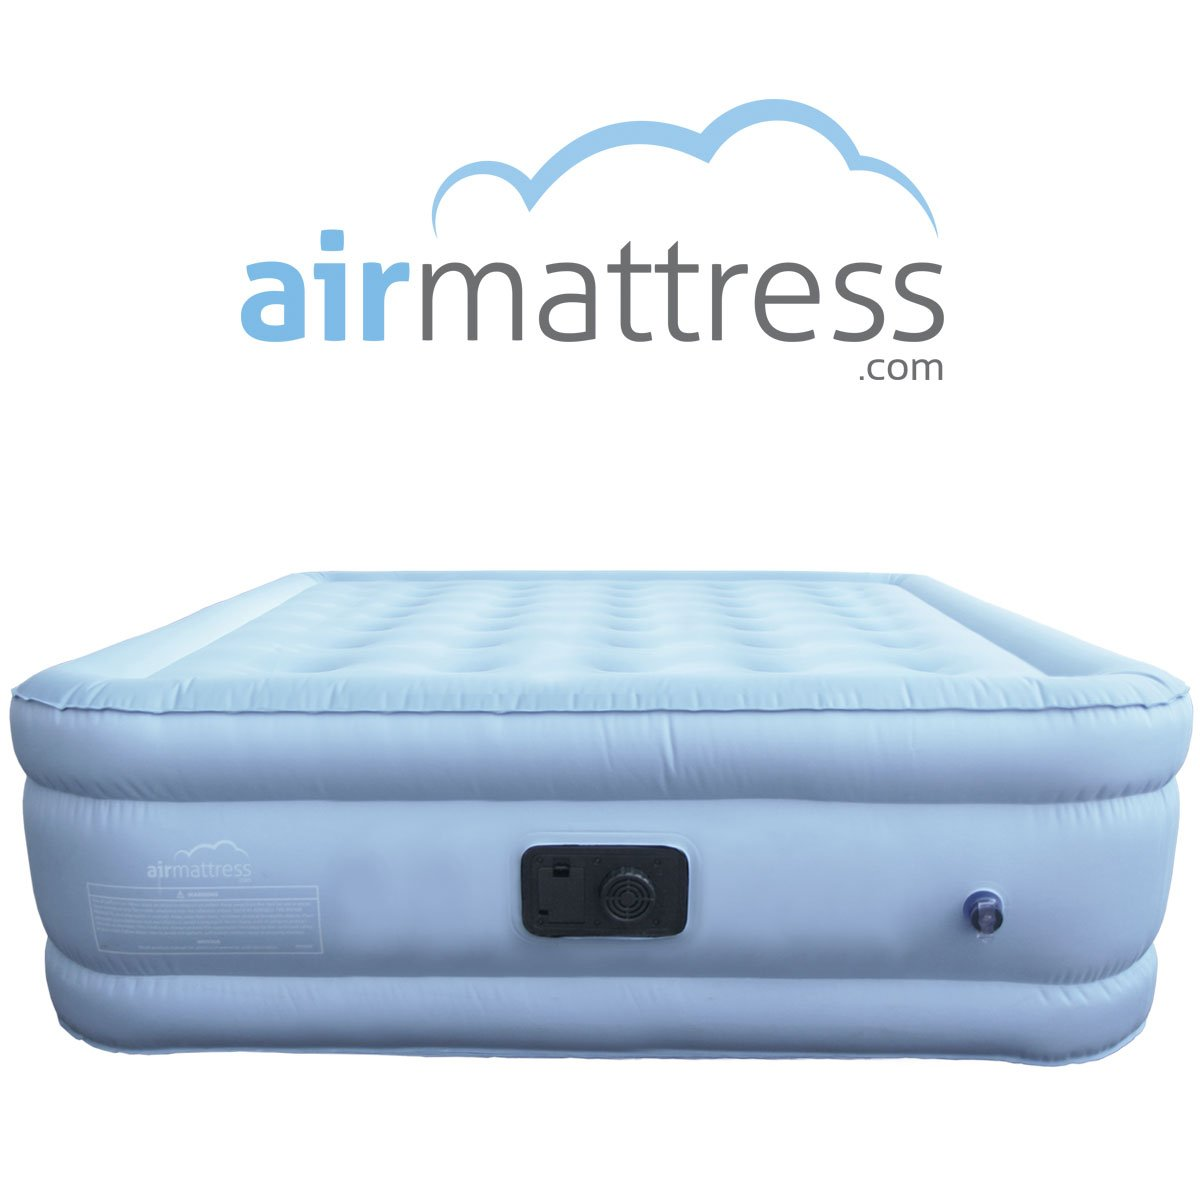 Details About Air Mattress King Size Best Choice Raised Inflatable Bed With Fitted Sheet And